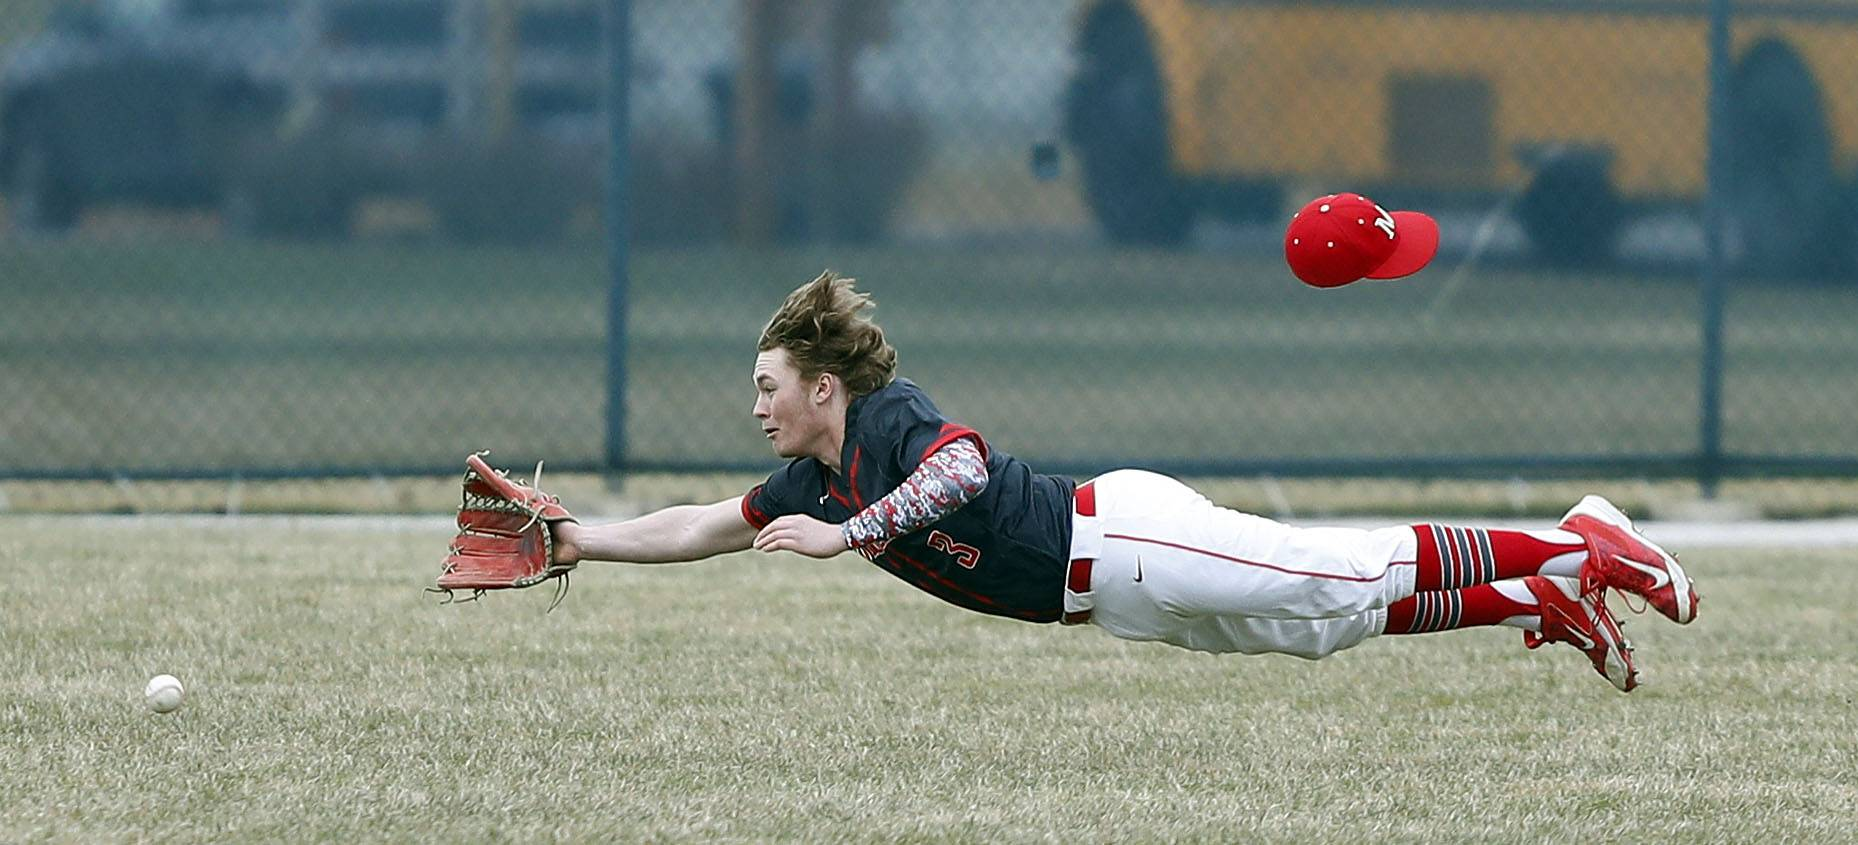 Mundelein's Jeff Morton makes a diving attempt at a flyball against Stevenson on Wednesday in Lincolnshire.